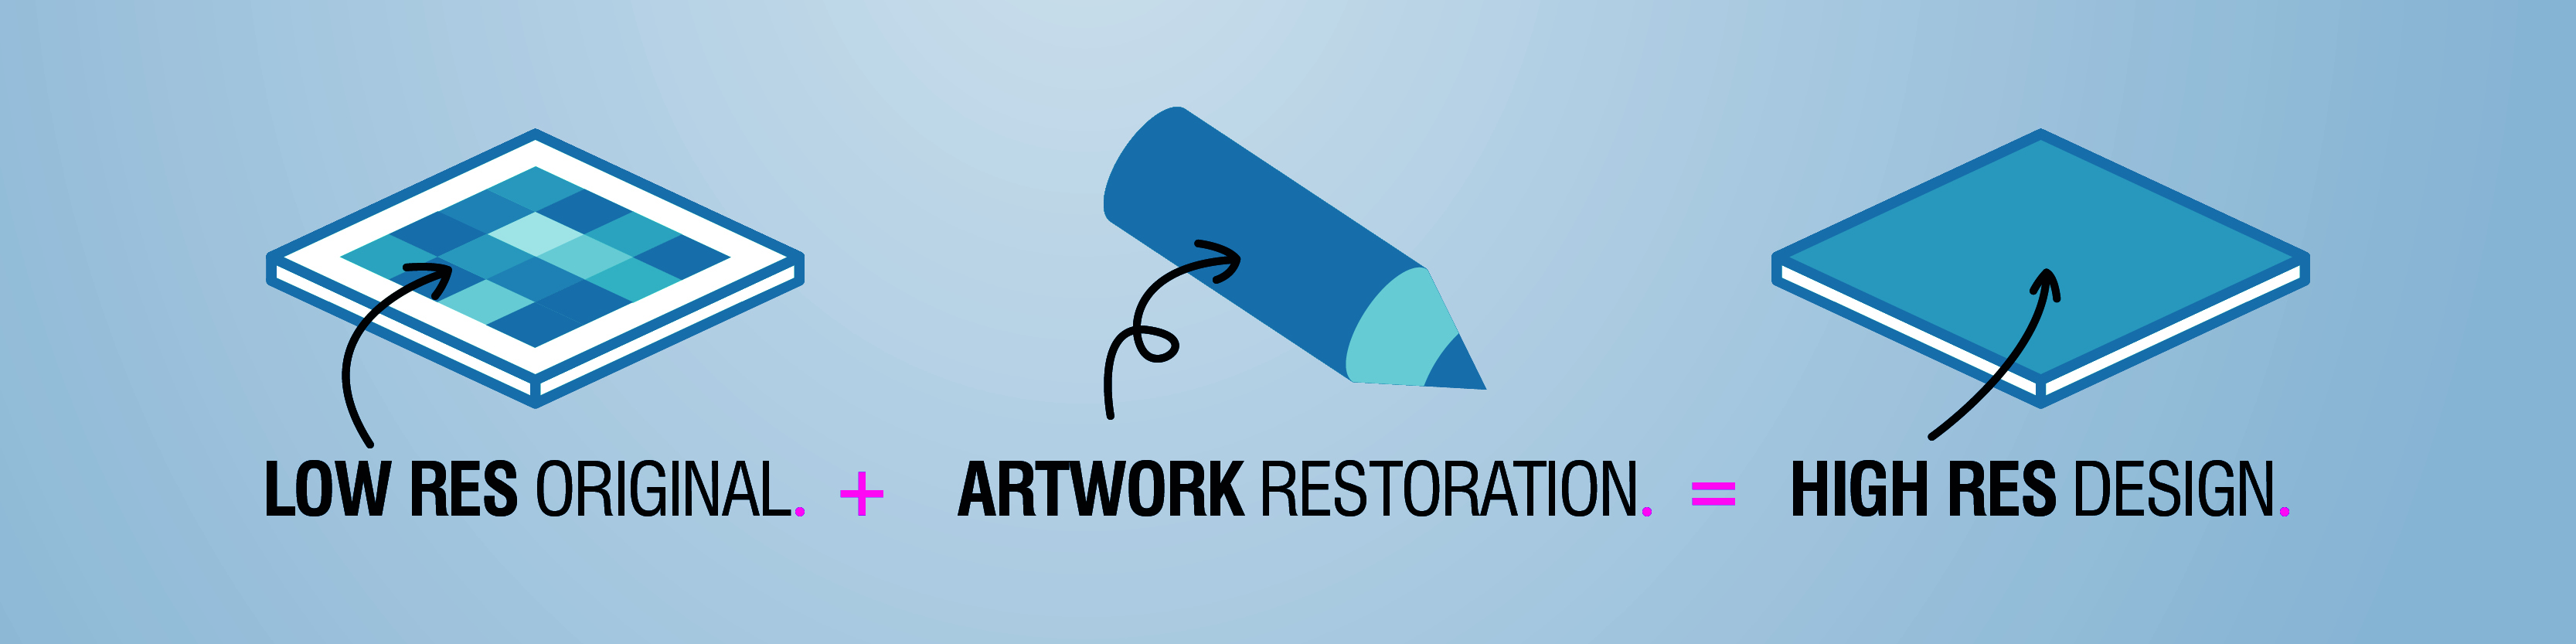 Product Layers - Artwork Restoration